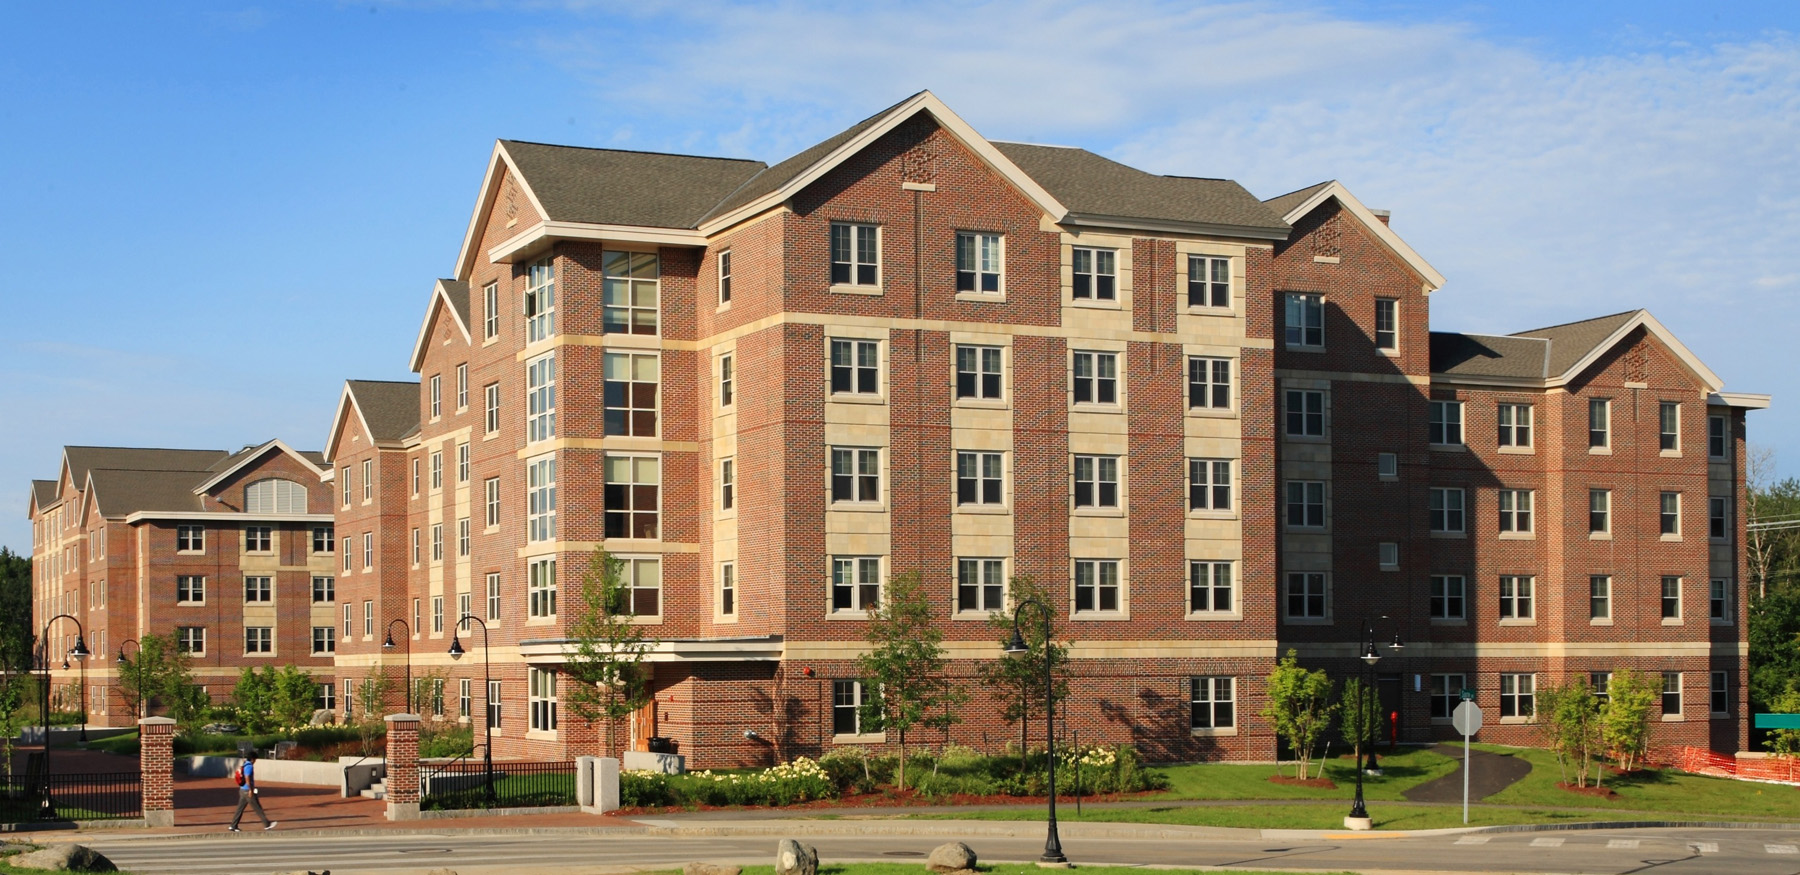 Ranking Of Unh Dorms And Residence Halls Society19